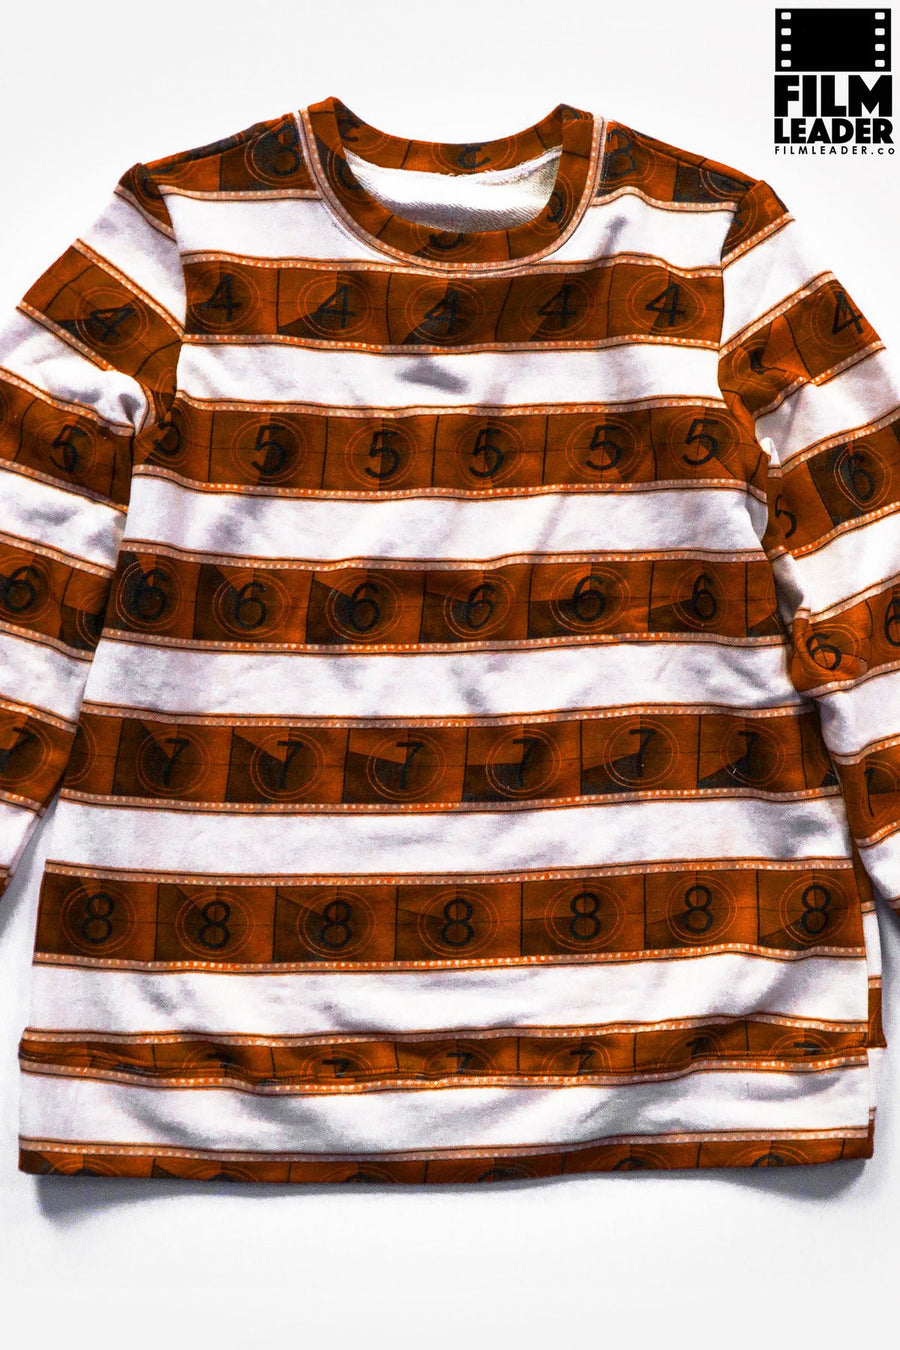 Classic Sweatshirt with Sepia IMAX 15/70mm Countdown Wide Stripe on White